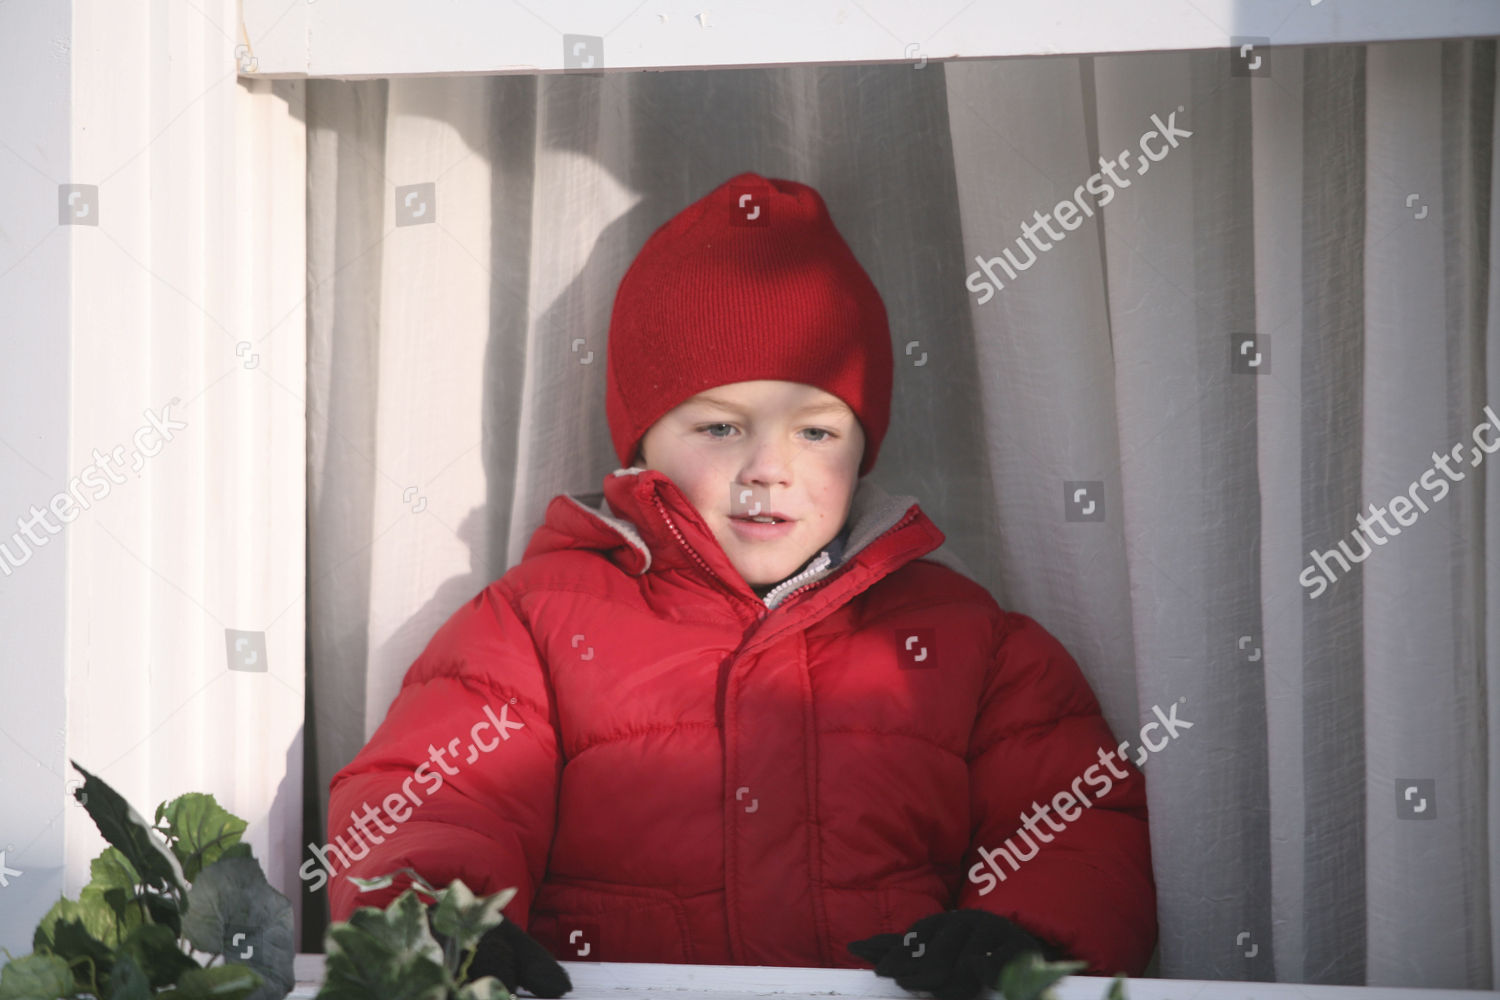 A Dennis The Menace Christmas.Maxwell Perry Cotton Editorial Stock Photo Stock Image